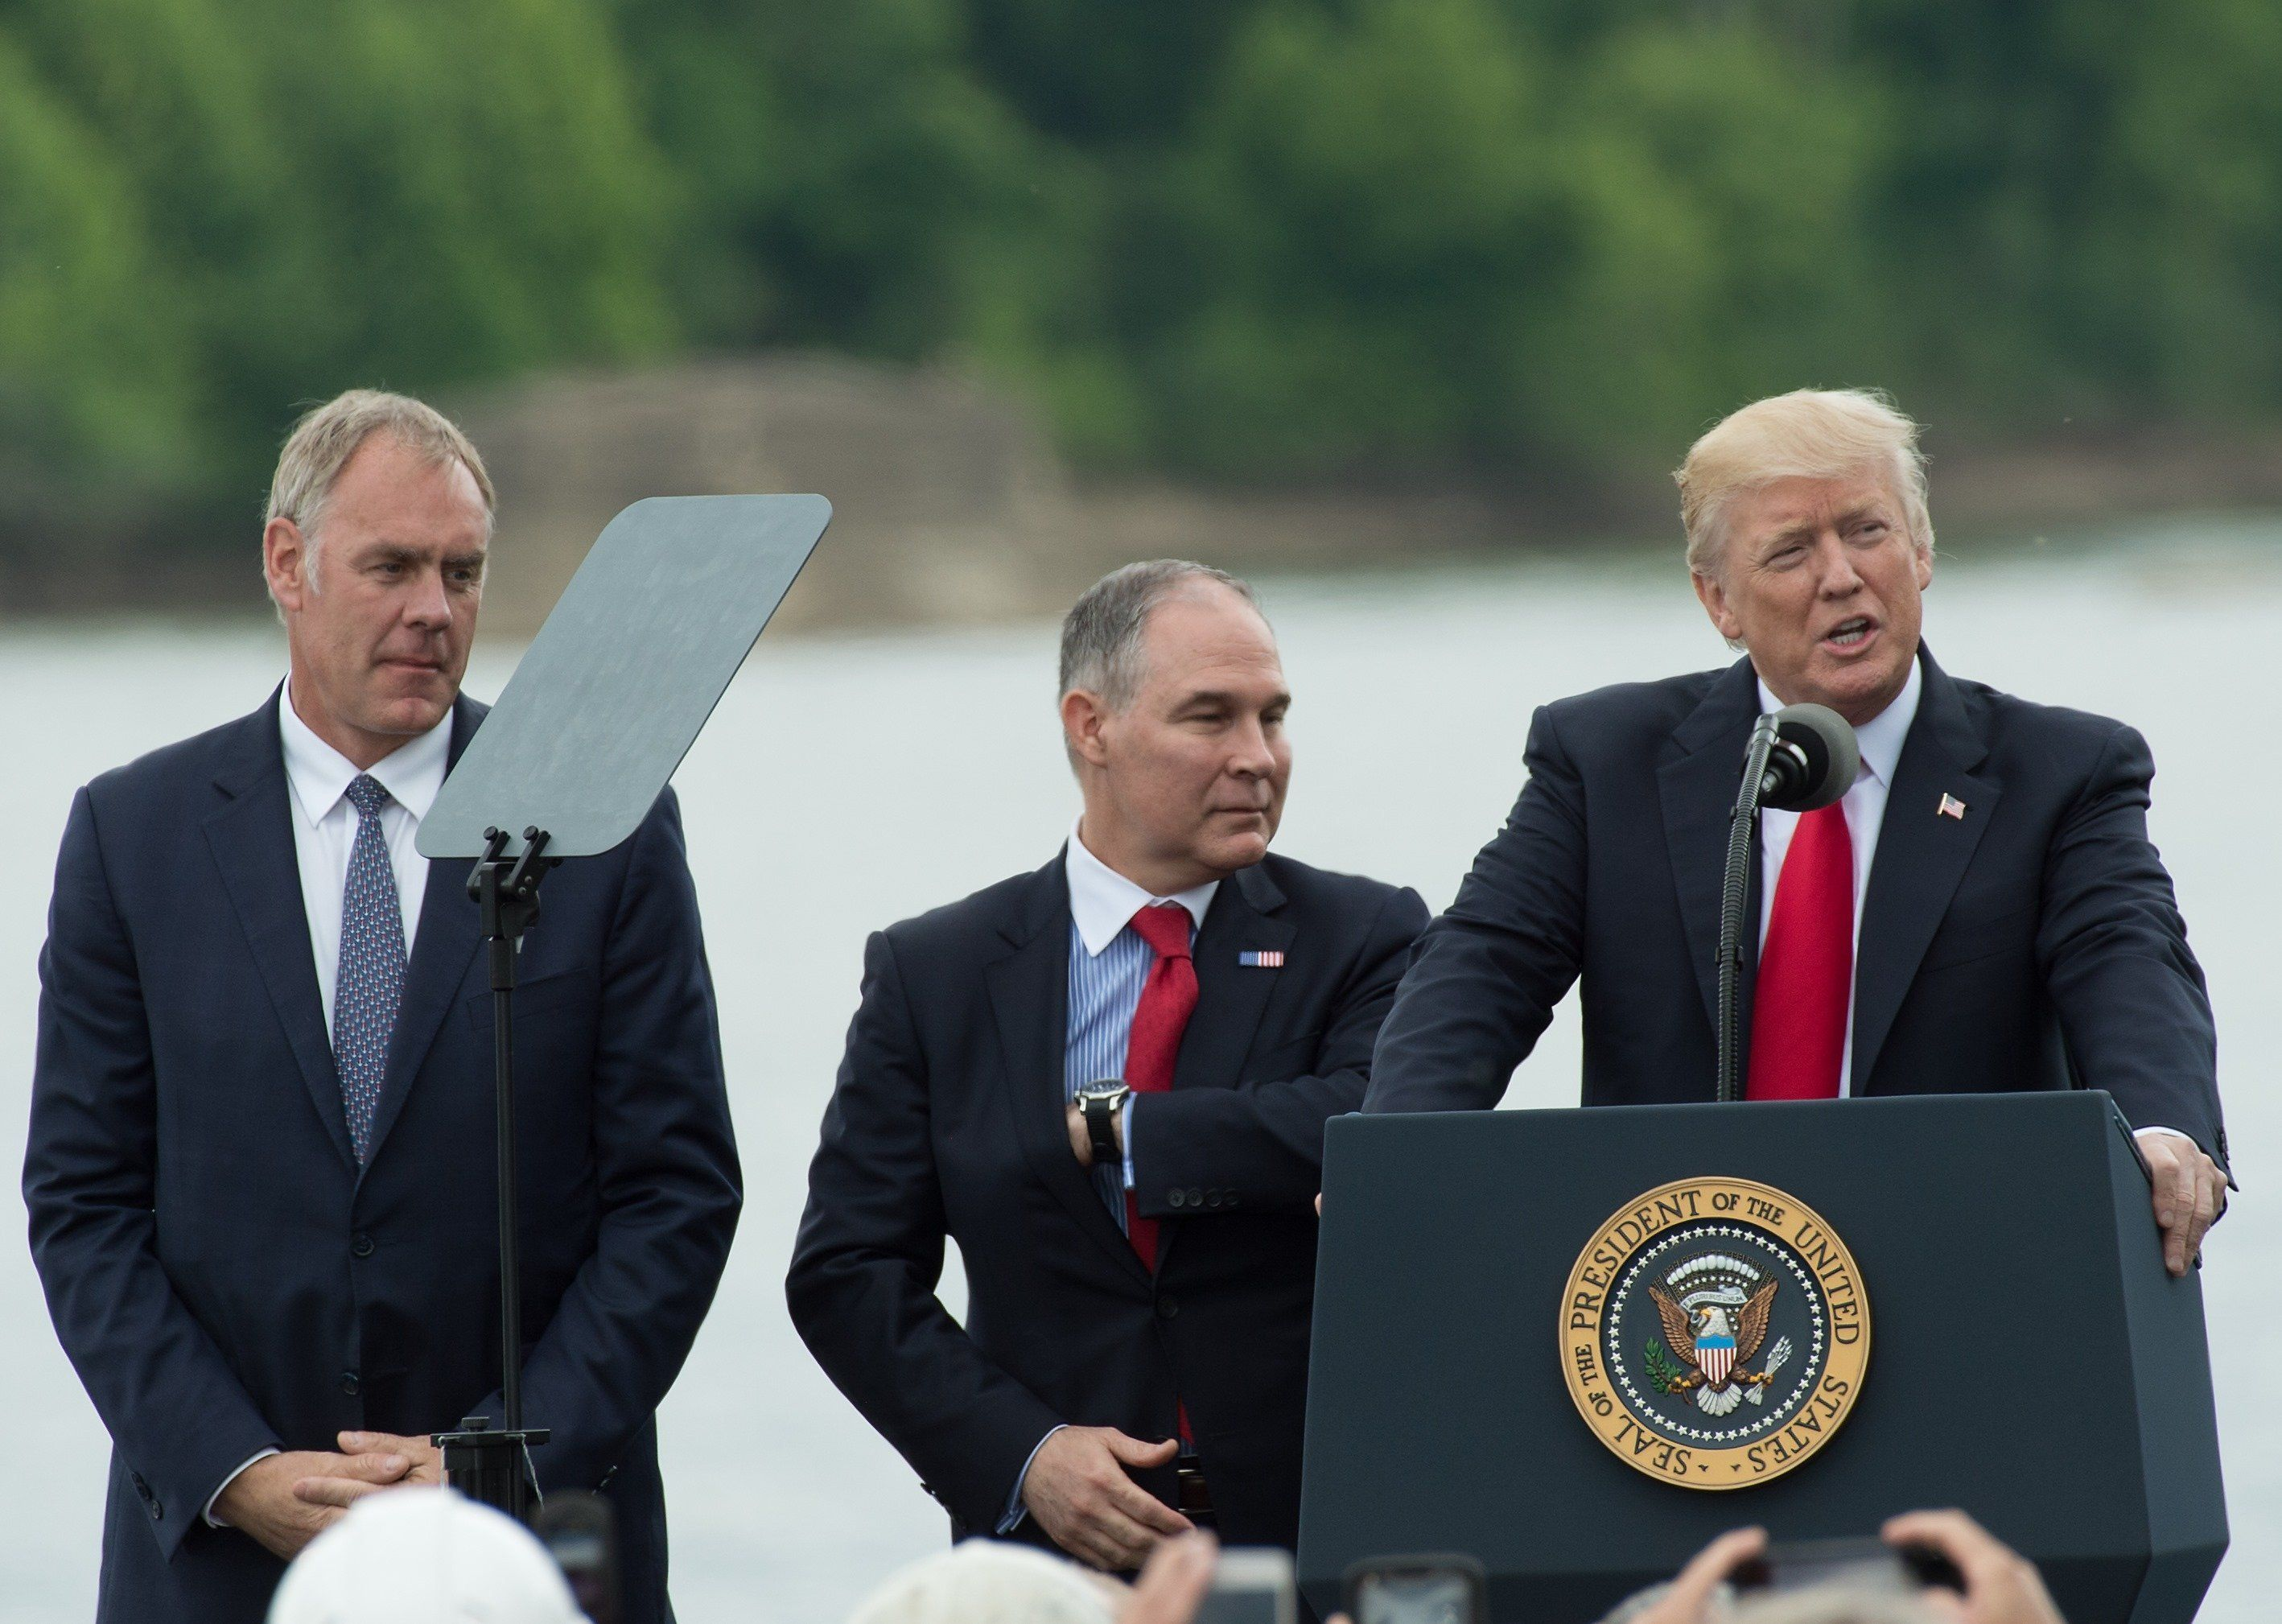 6 Trump Administration Climate Claims Exposed As Total Nonsense By Federal Report